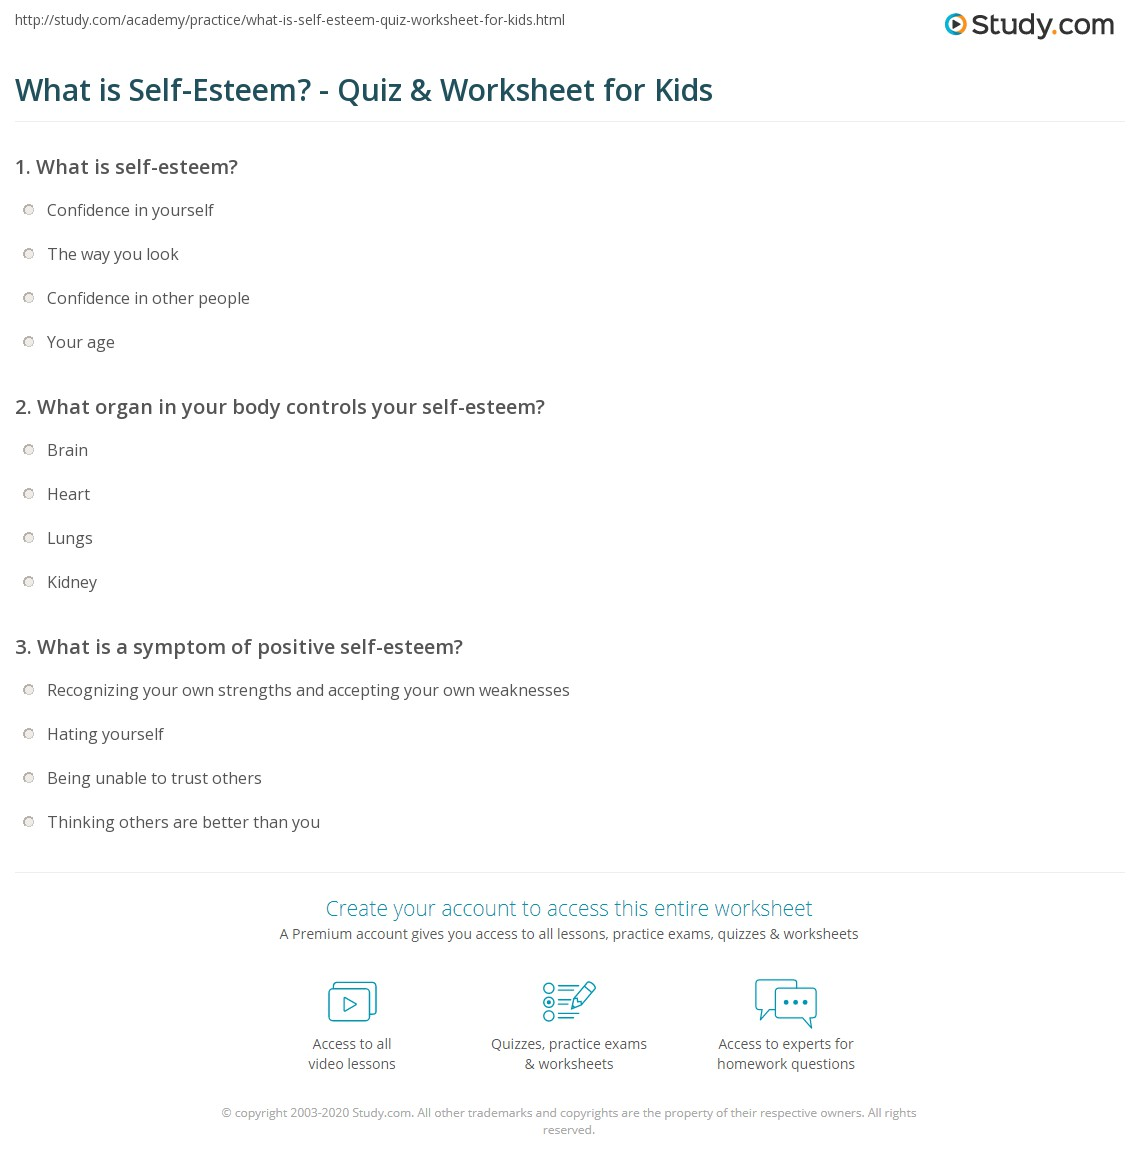 photo regarding Self Esteem Quiz Printable known as What is Self-Esteem? - Quiz Worksheet for Youngsters